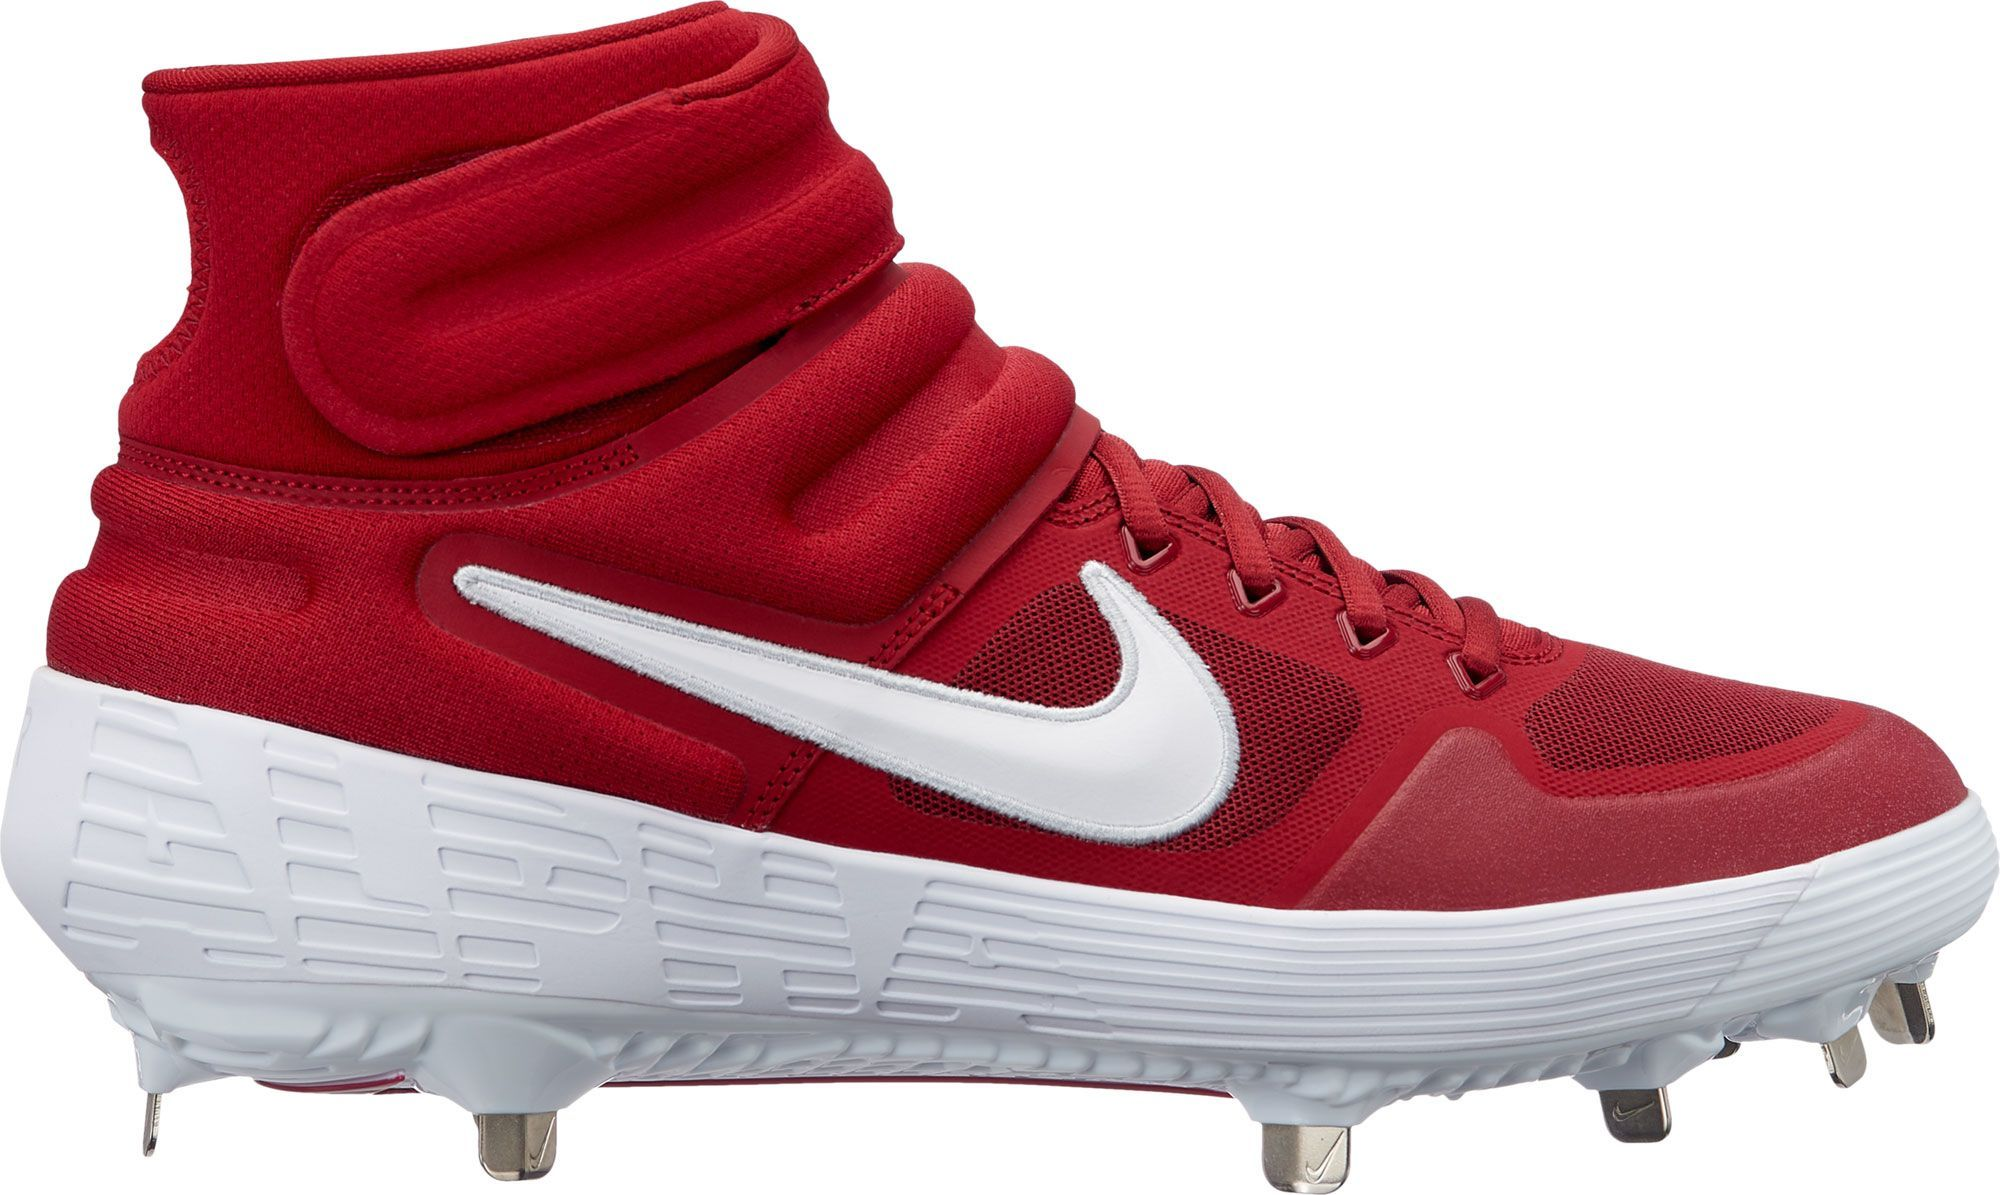 Nike Alpha Huarache Elite 2 Turf Baseball Cleat